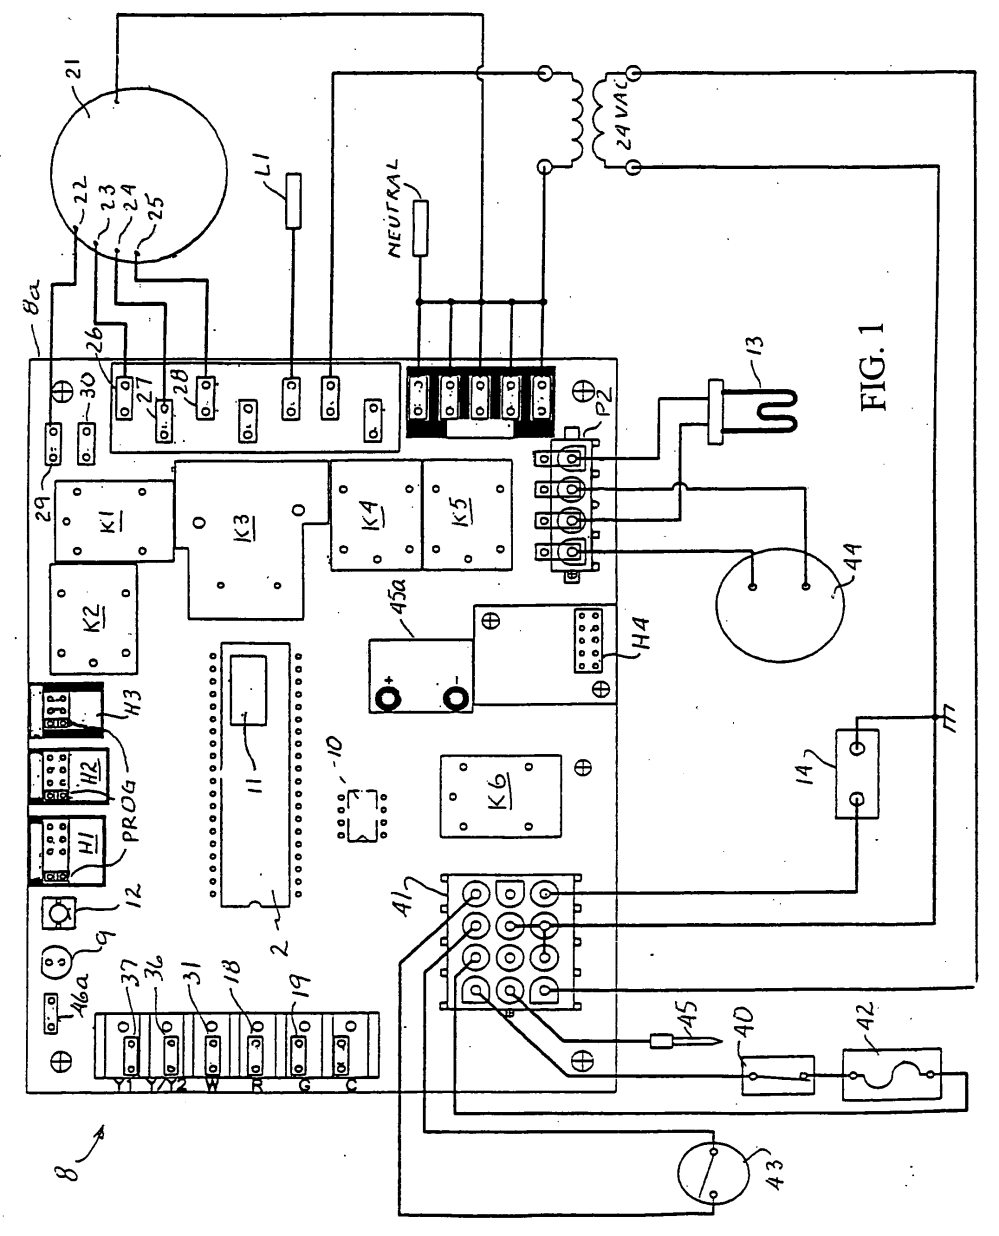 medium resolution of  us20040220777a1 20041104 d00001 york furnace control board schematic circuit and schematics diagram furnace wiring diagram older